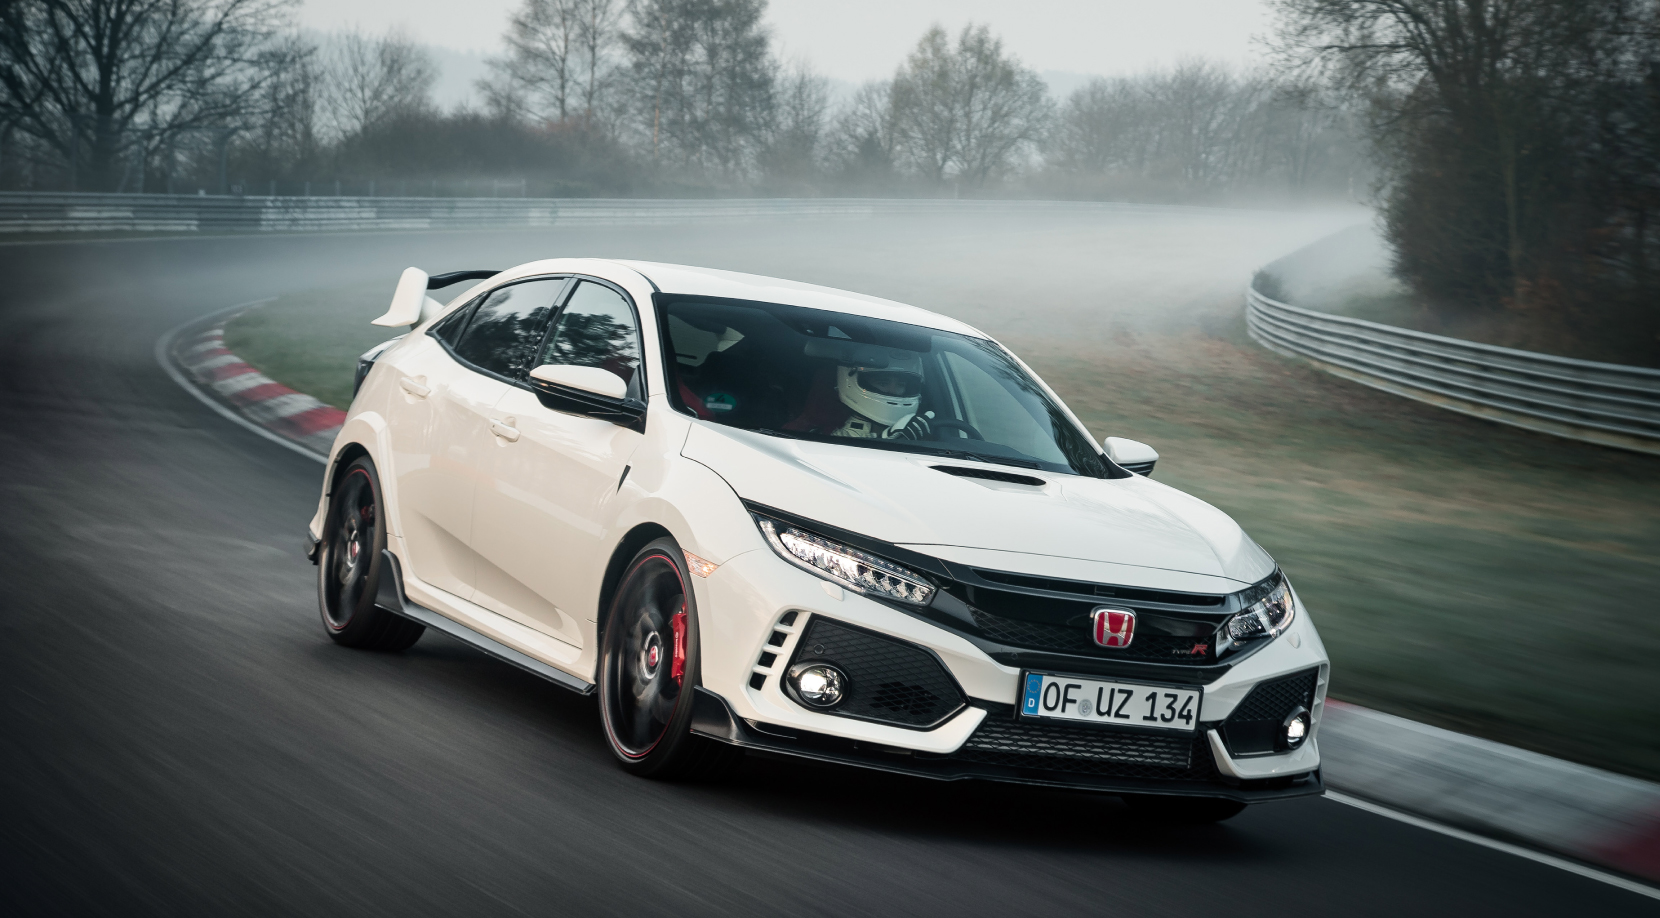 Civic Type R sets fastest front-wheel drive lap at the Nürburgring *  (Honda research as of April 2017